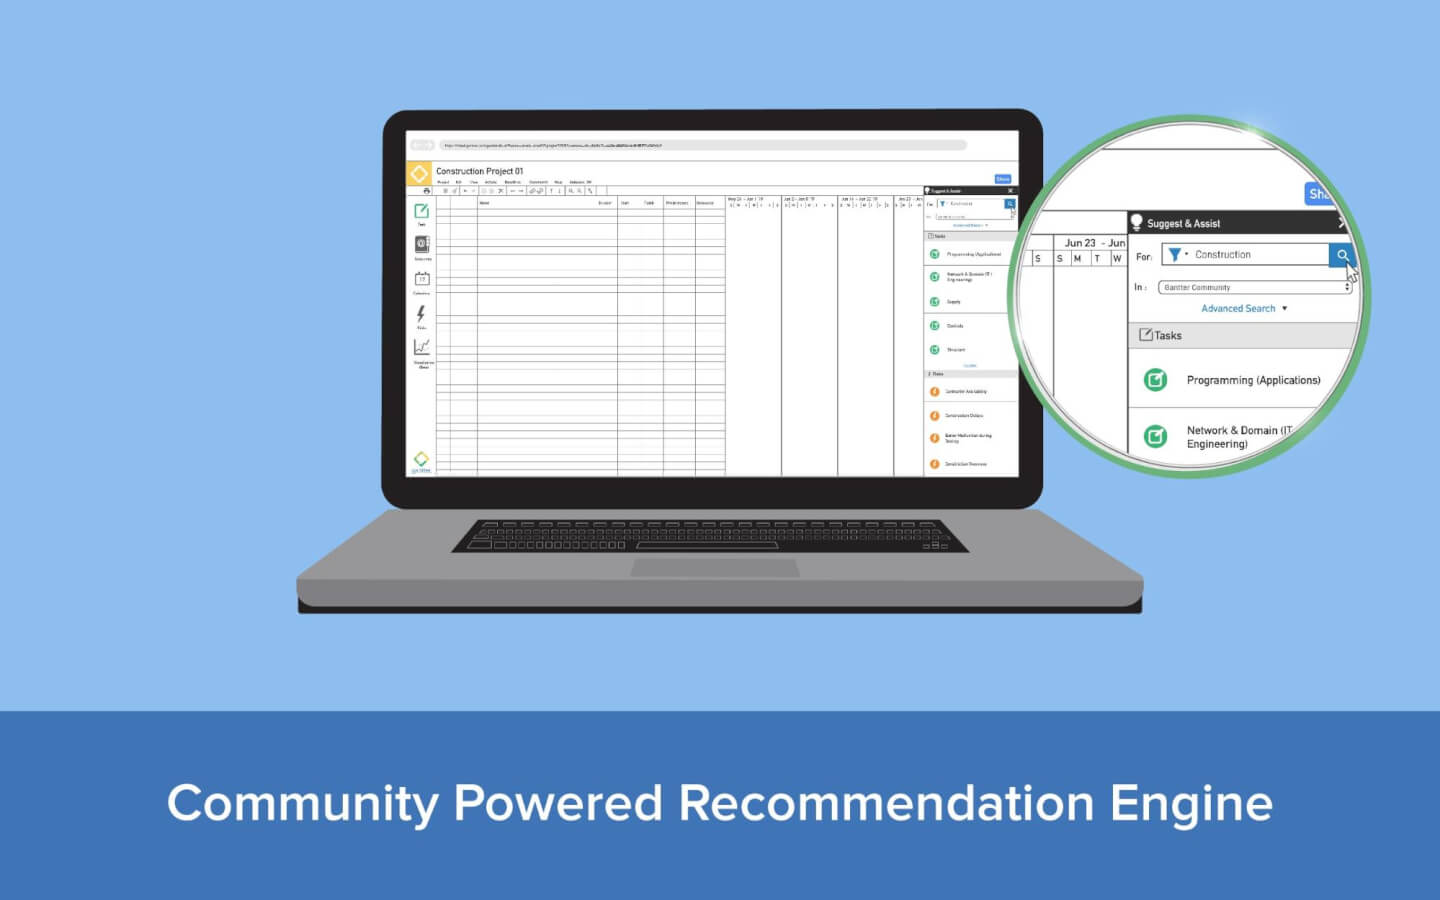 Community powered recommendation engine image